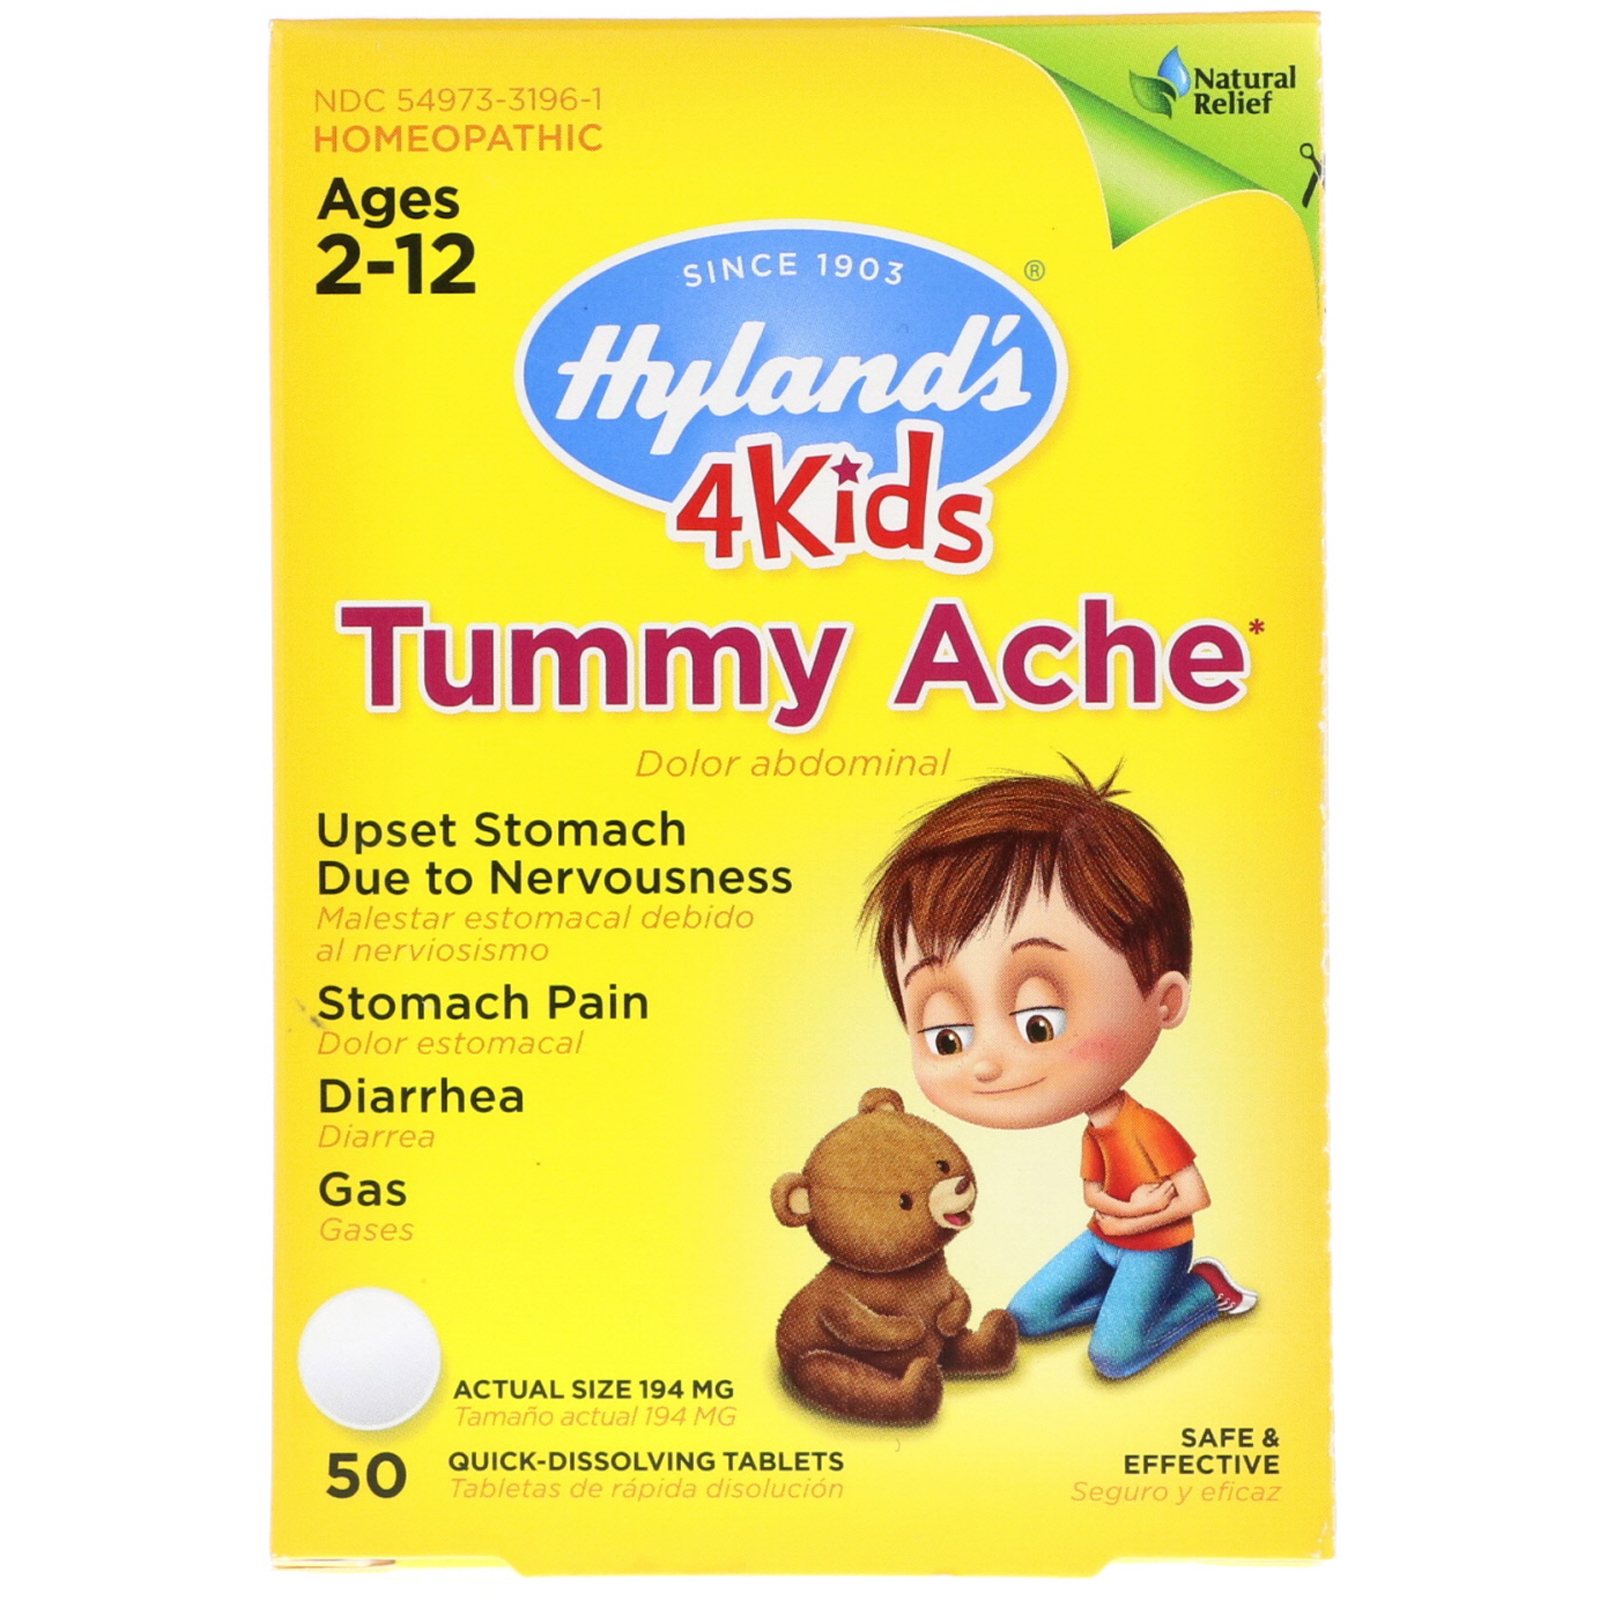 Hyland S 4kids Tummy Ache Ages 2 12 50 Quick Dissolving Tablets